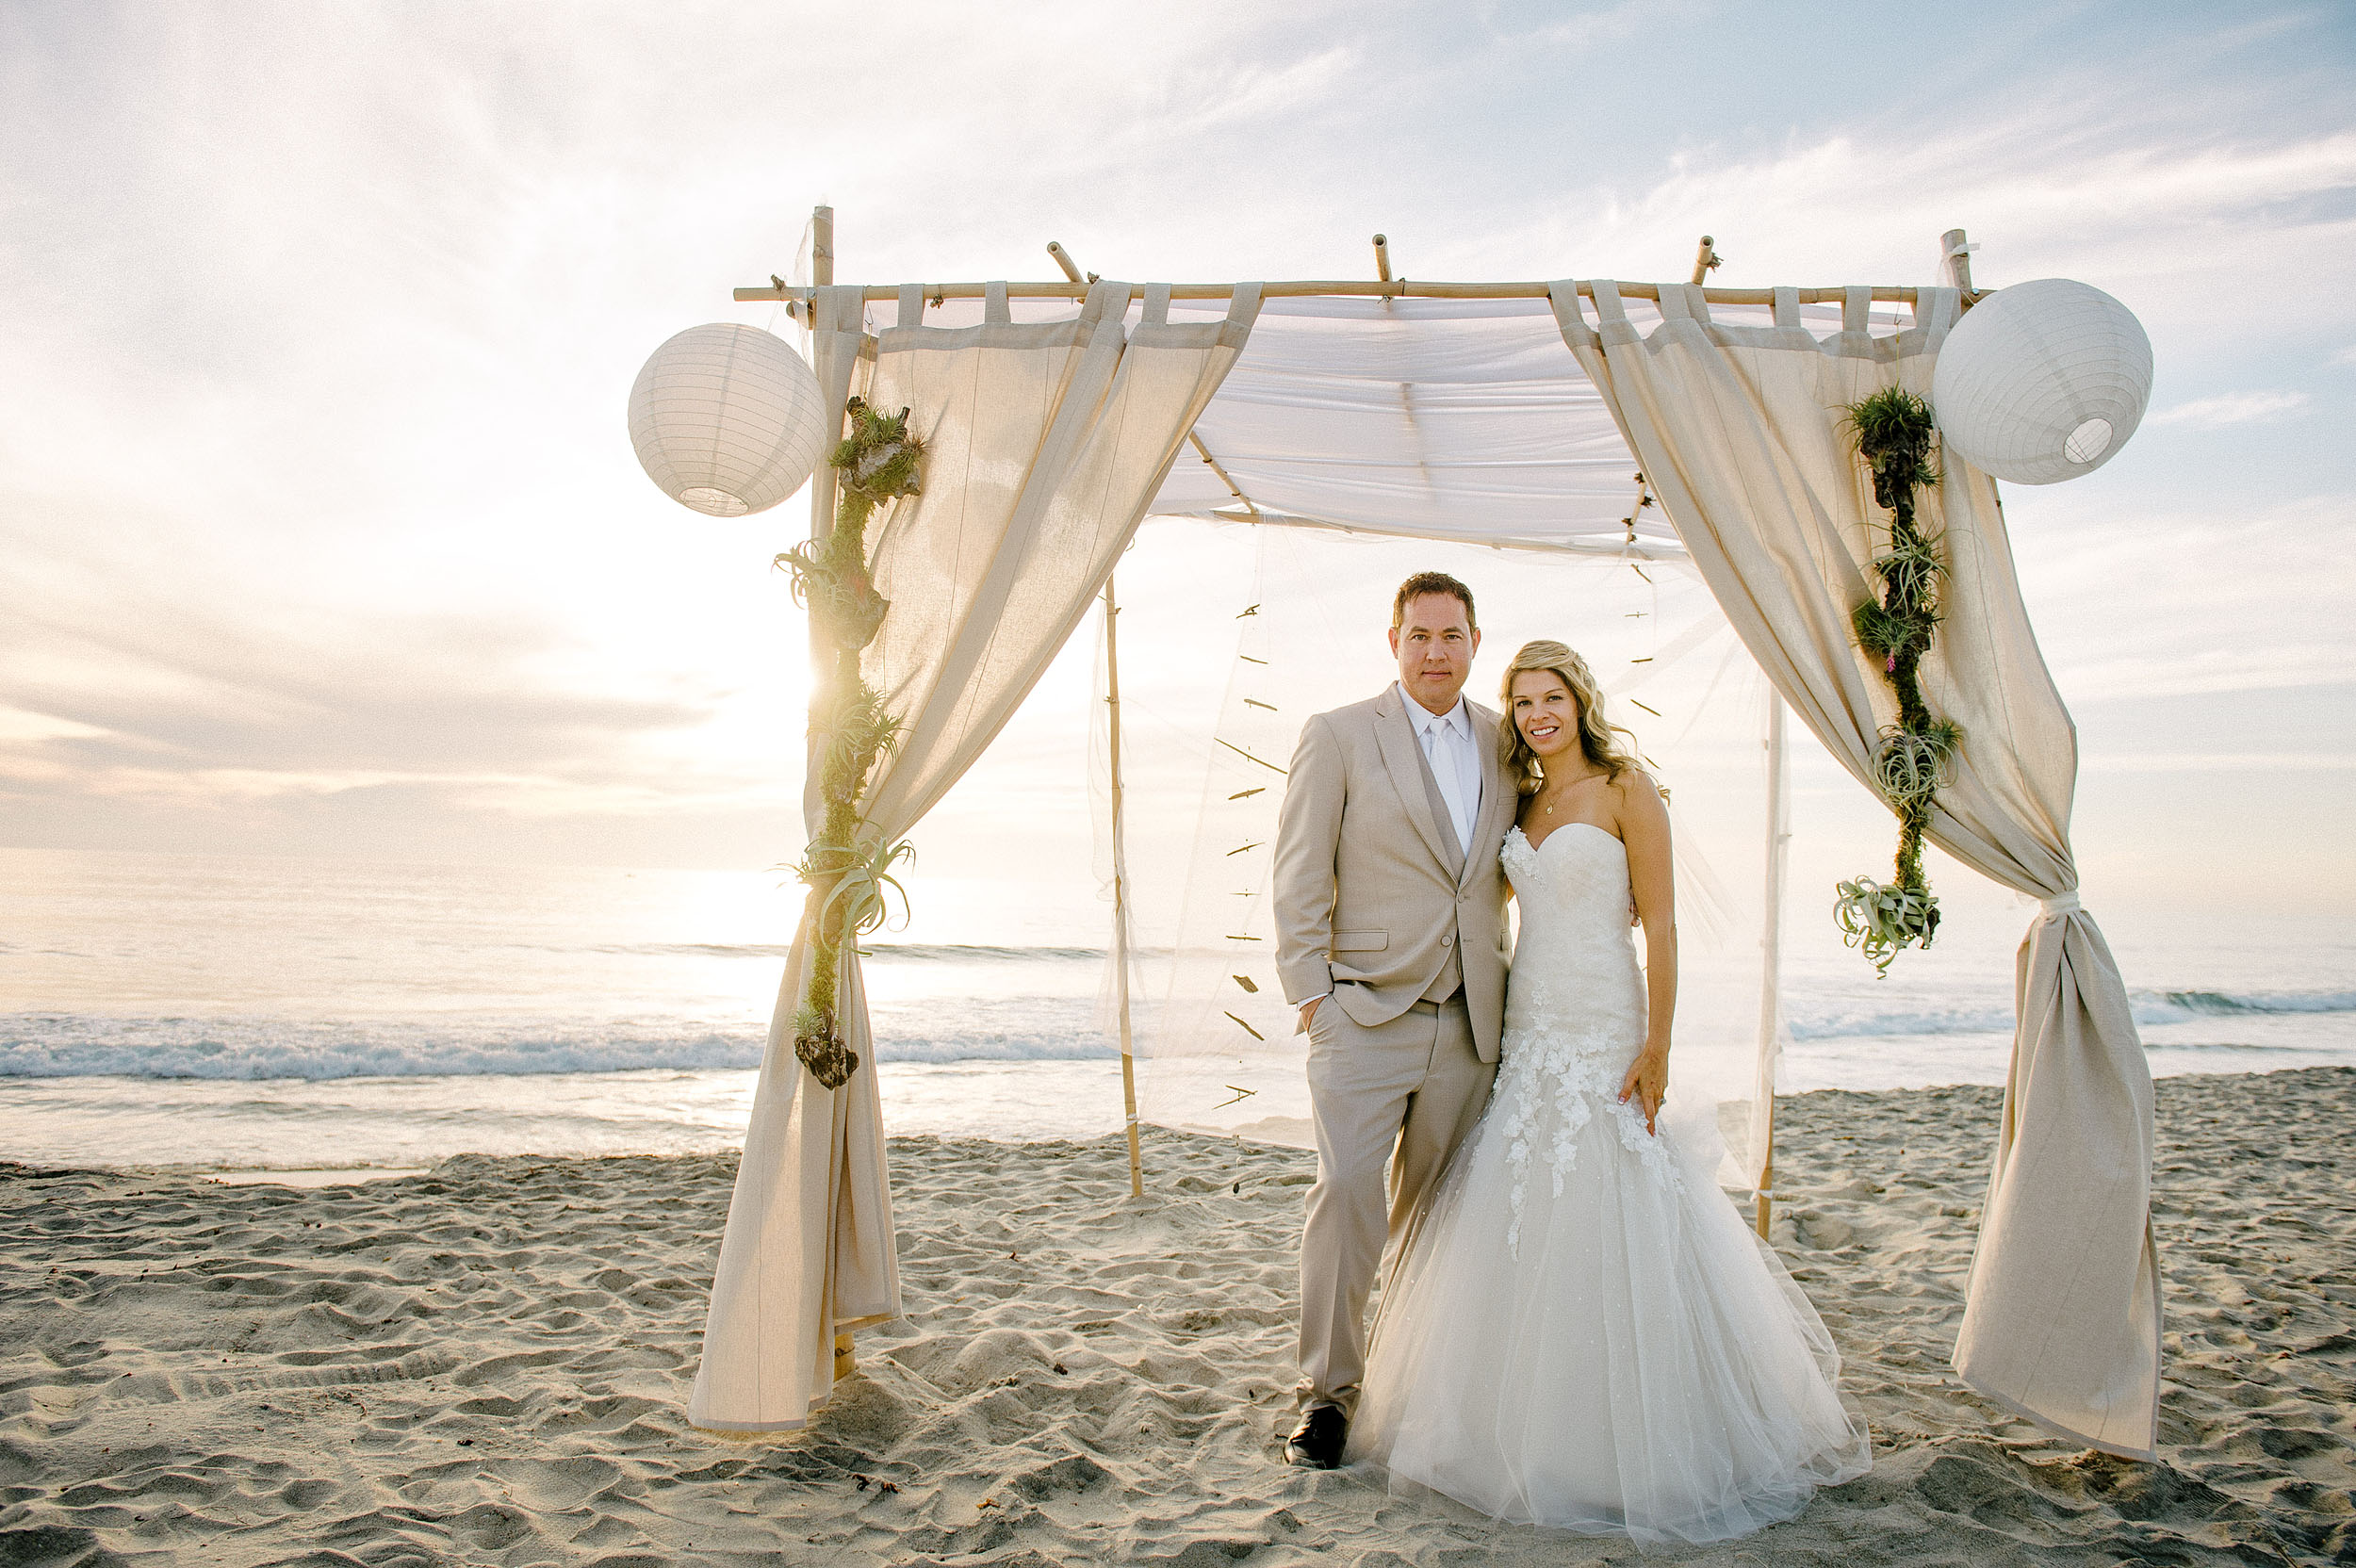 Bride and groom on beach at sunset in Oceanside.